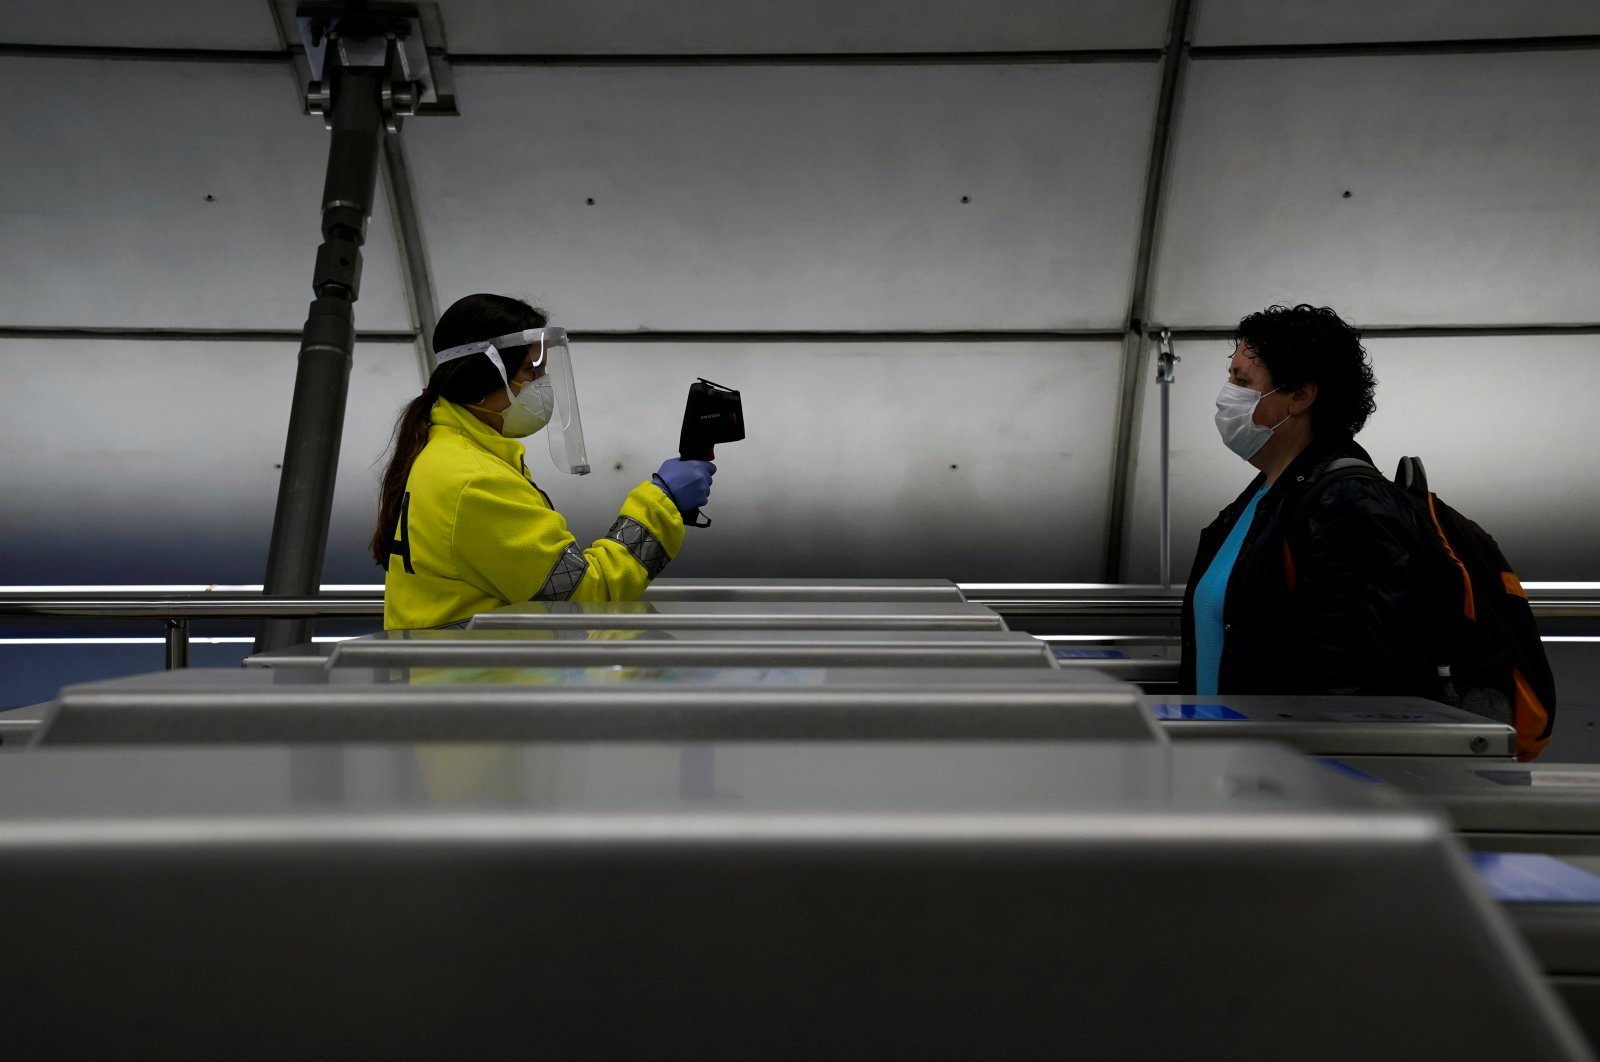 A member of the voluntary ambulance service organisation DYA (Detente y Ayuda) uses a thermal imaging camera to take the temperature of a train passenger in Bilbao, Spain, May 11, 2020. (Reuters Photo)